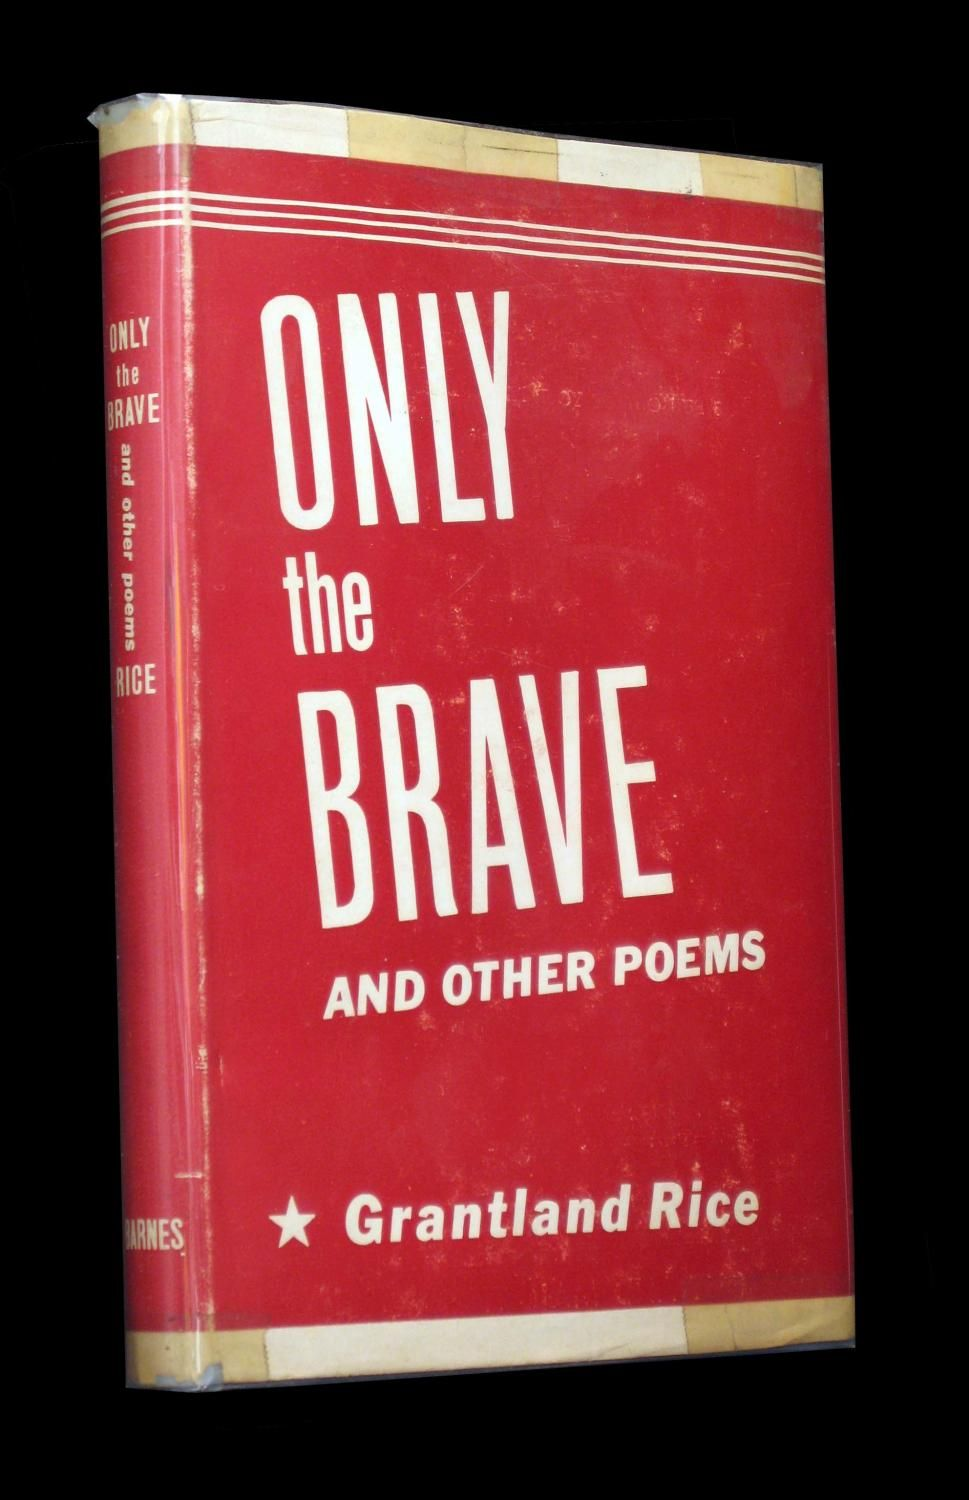 """Known as the """"Dean of American Sports Writers,"""" Rice was also a talented poet. Here, """"inspirational, soothing poetry, especially suitable to send to the boys at camp"""" (from the jacket). Prime examples of what Irving S. Cobb once referred to as """"homely, gentle American verse."""" Fairly scarce in the oh-so-delicate war-time jacket. Bookseller Inventory # 4461"""